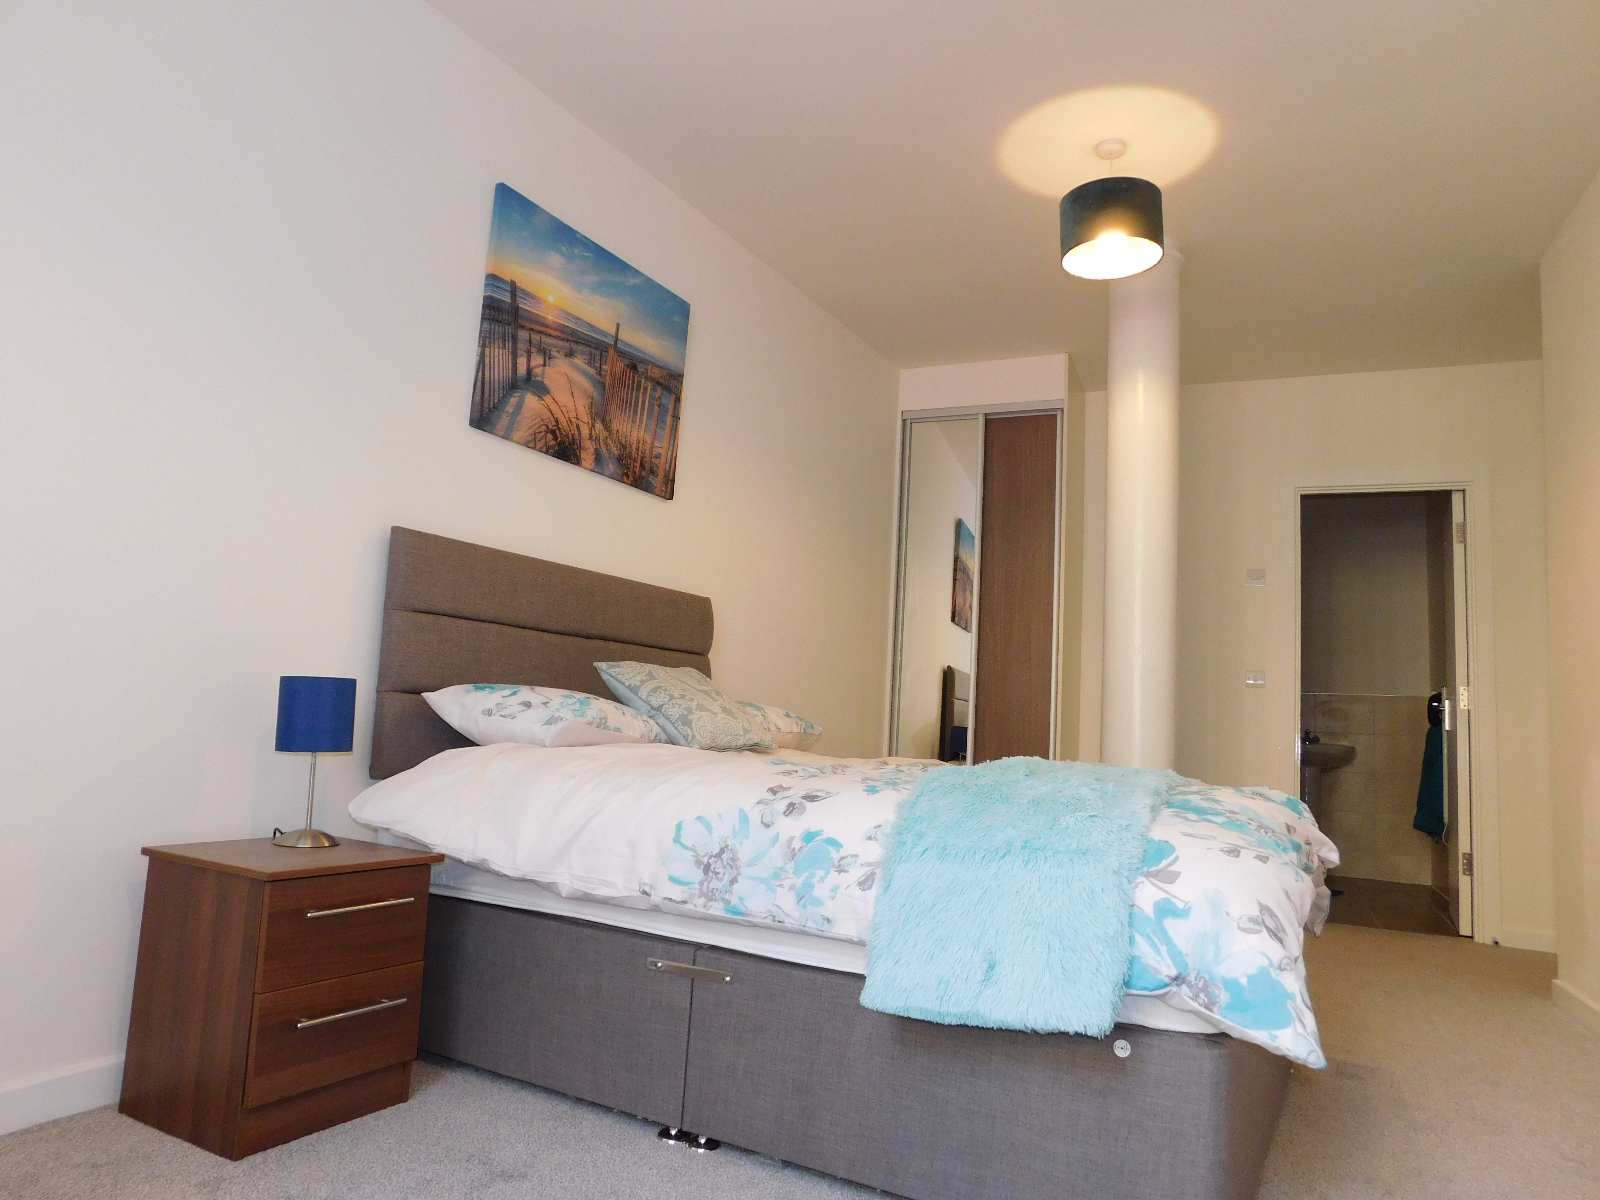 Charming and Fabulous double bedroom en suite for rent in Spitalfiled London image